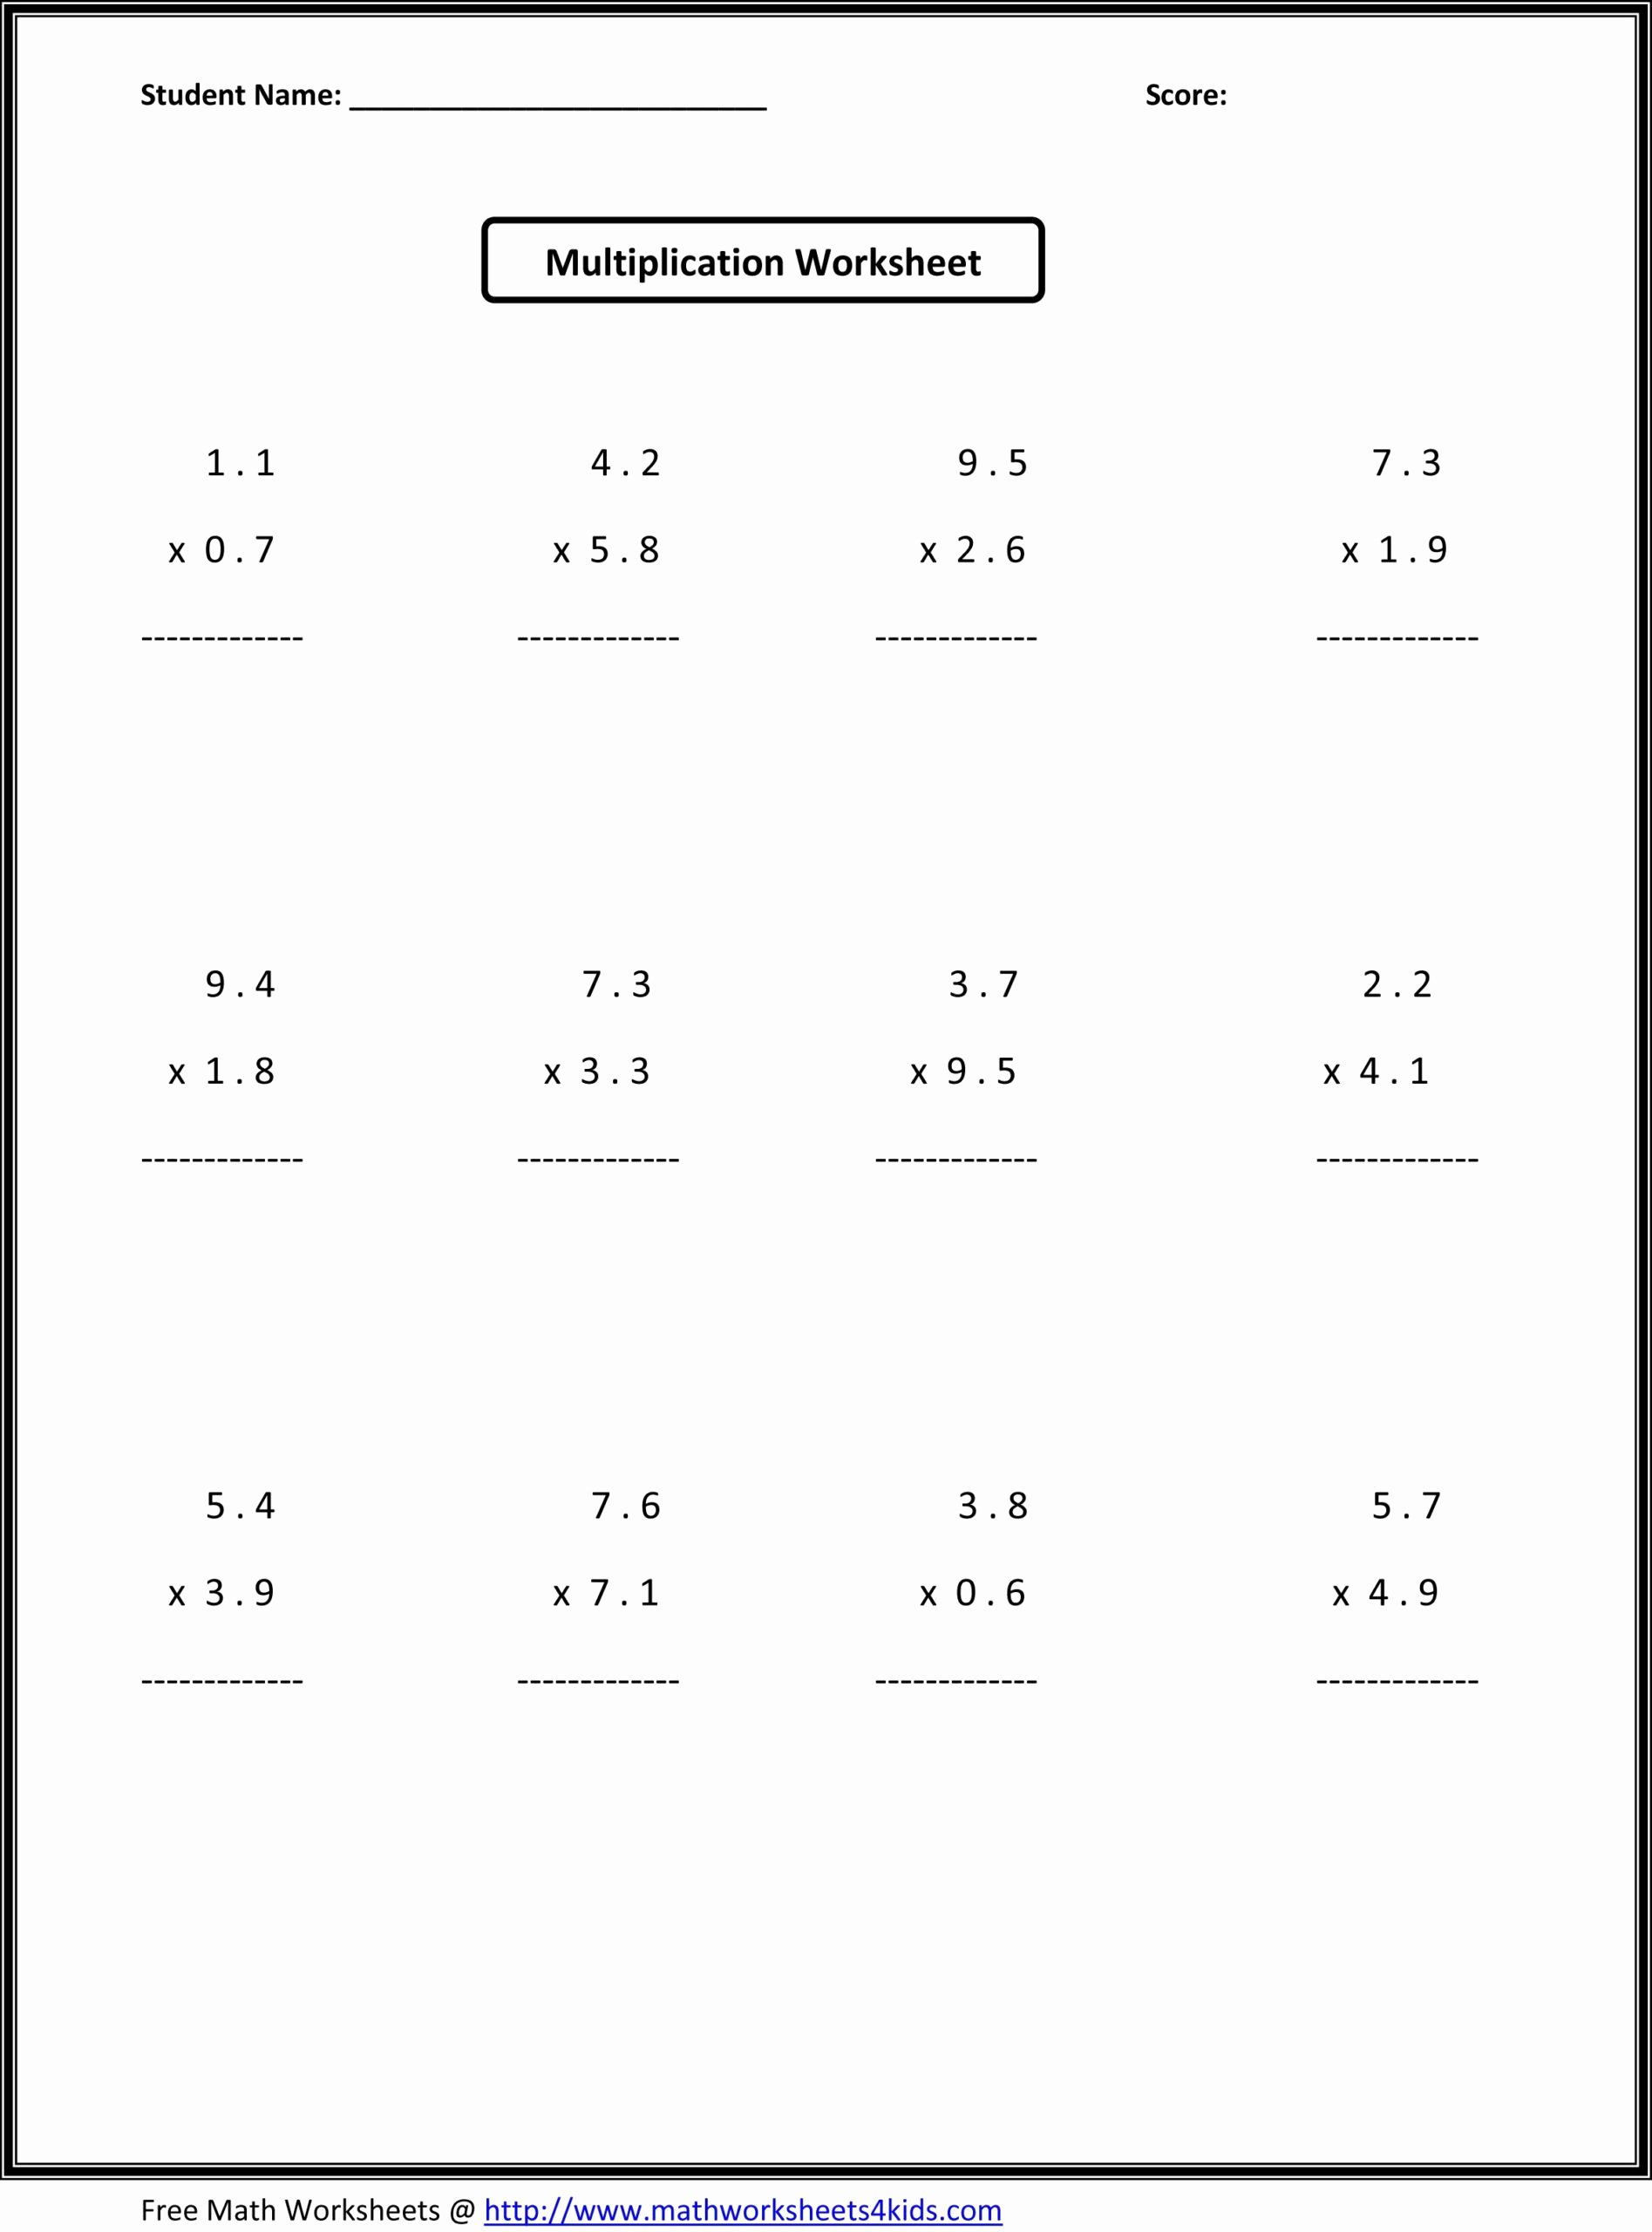 Learning Multiplication Worksheets Fresh Worksheets for Grade Printable and Activities 7th Math